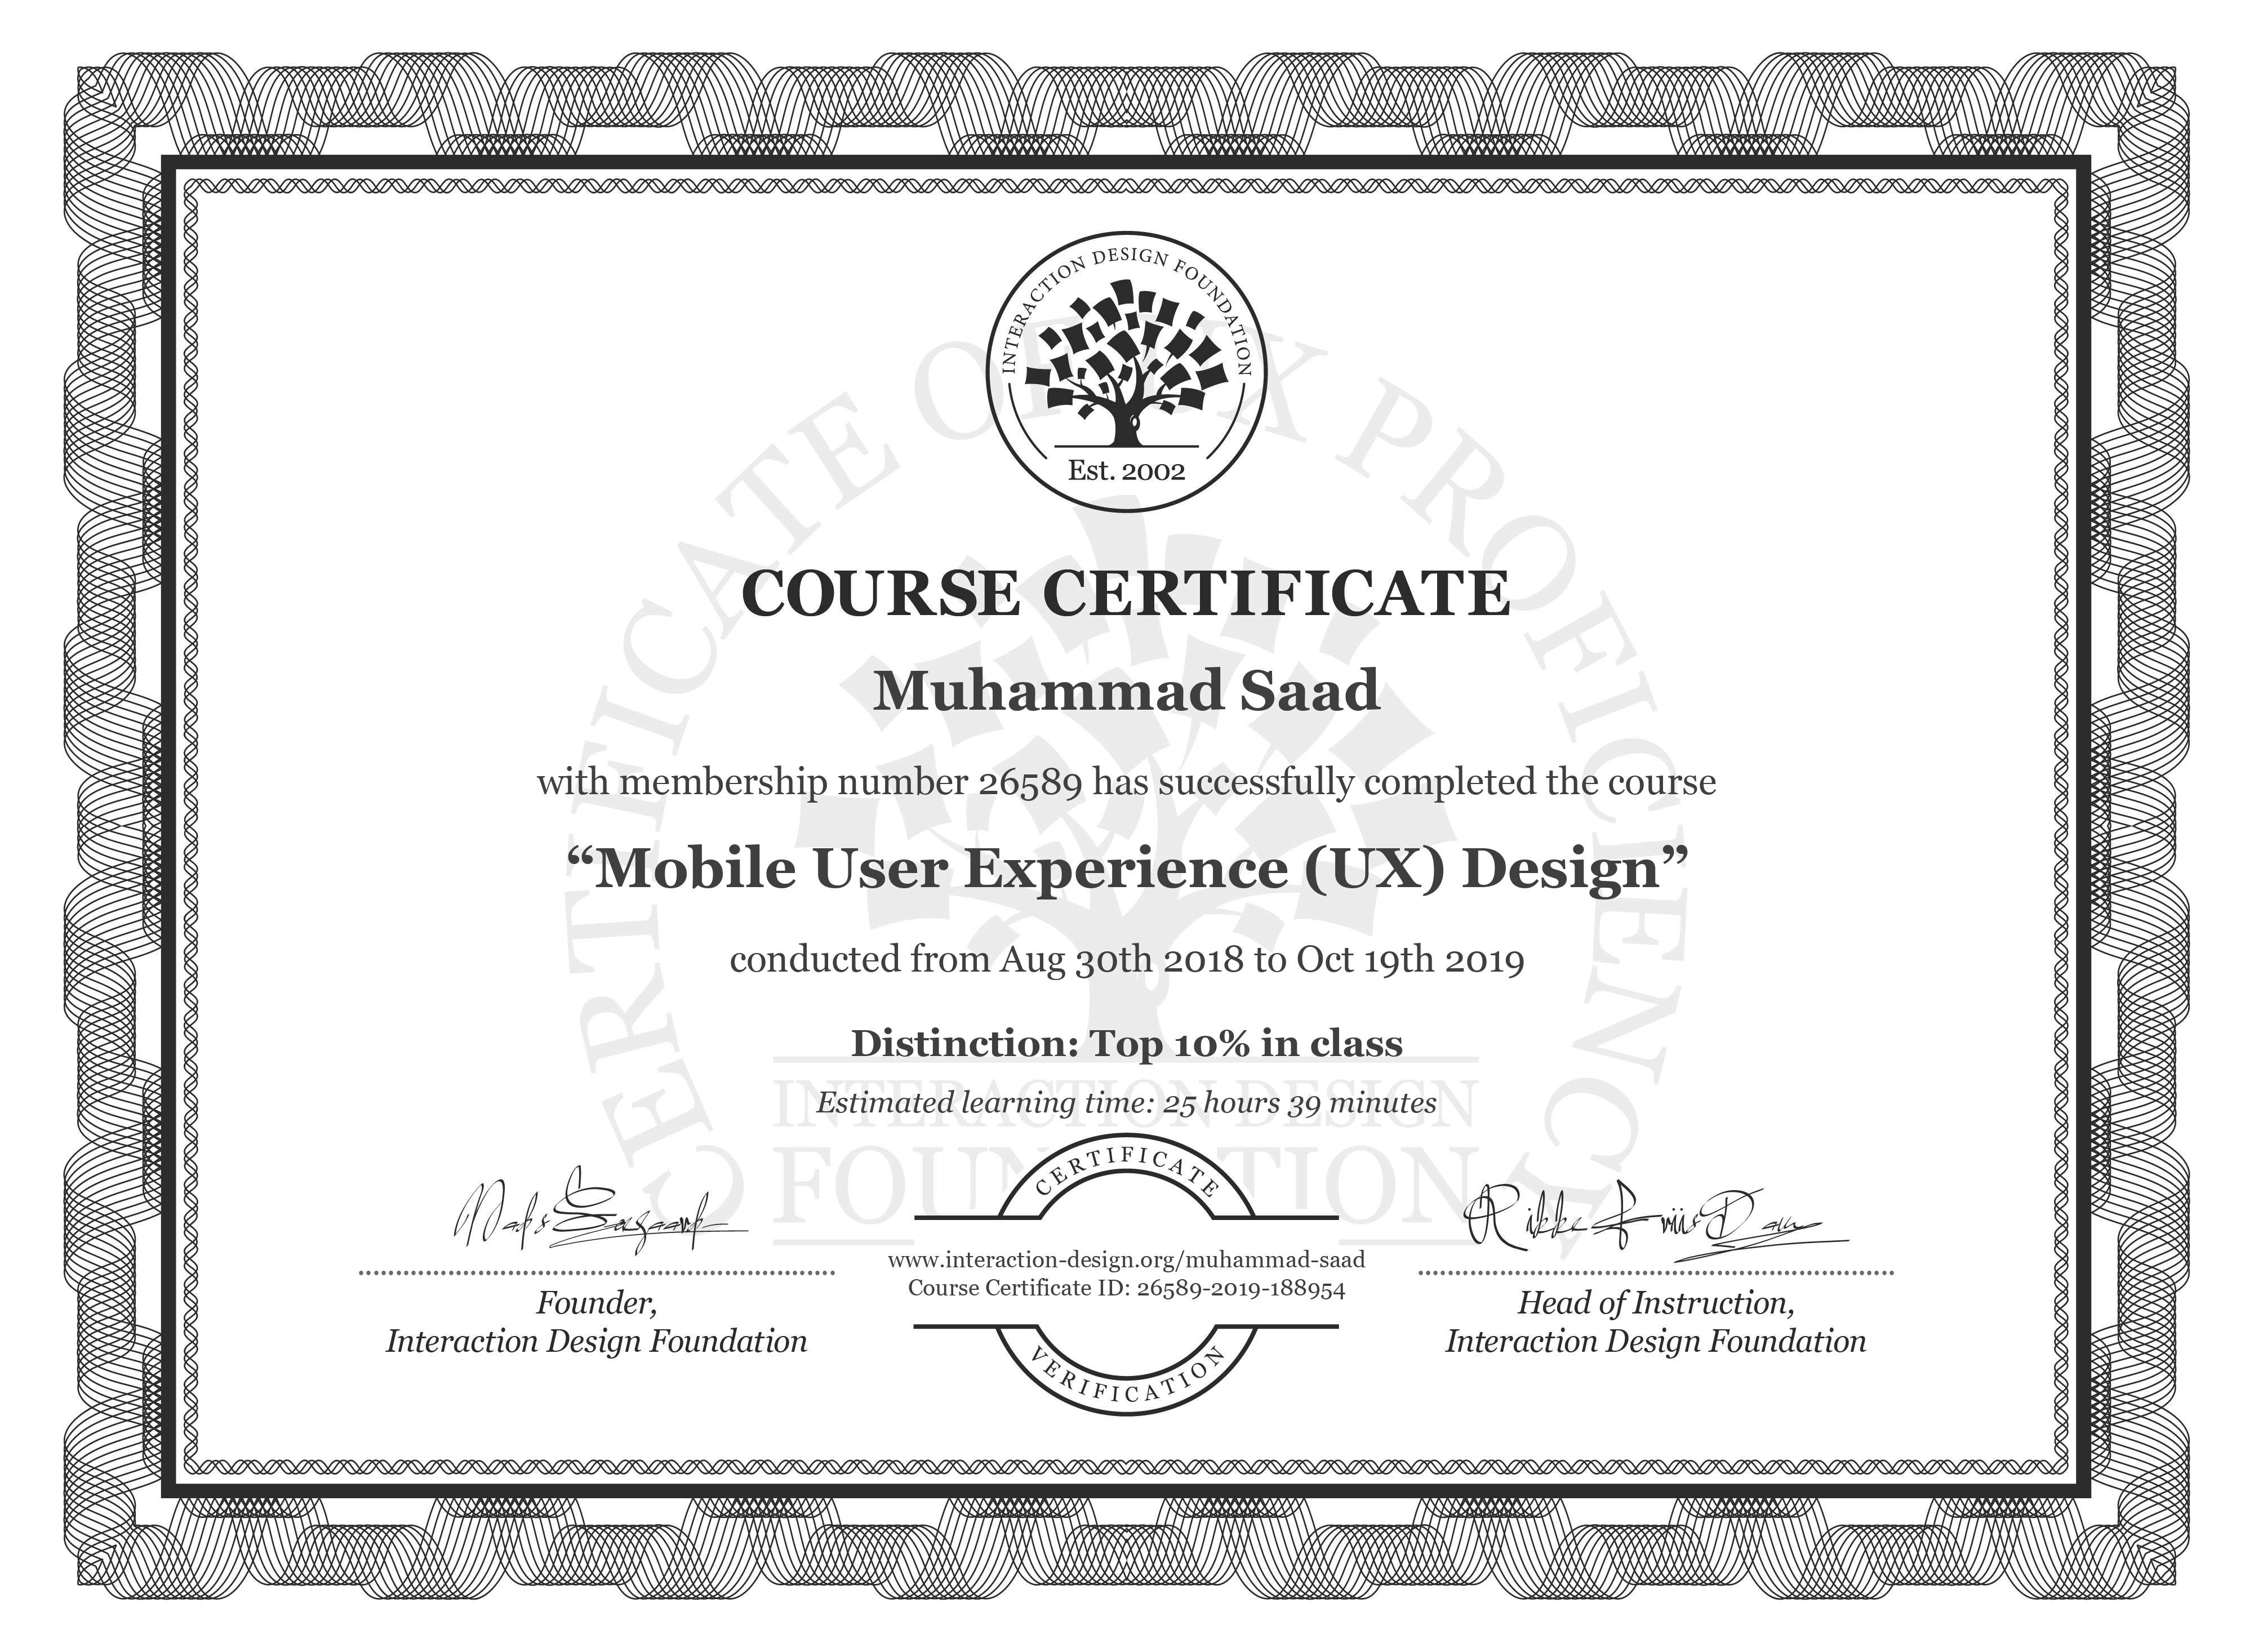 Muhammad Saad: Course Certificate - Mobile User Experience (UX) Design